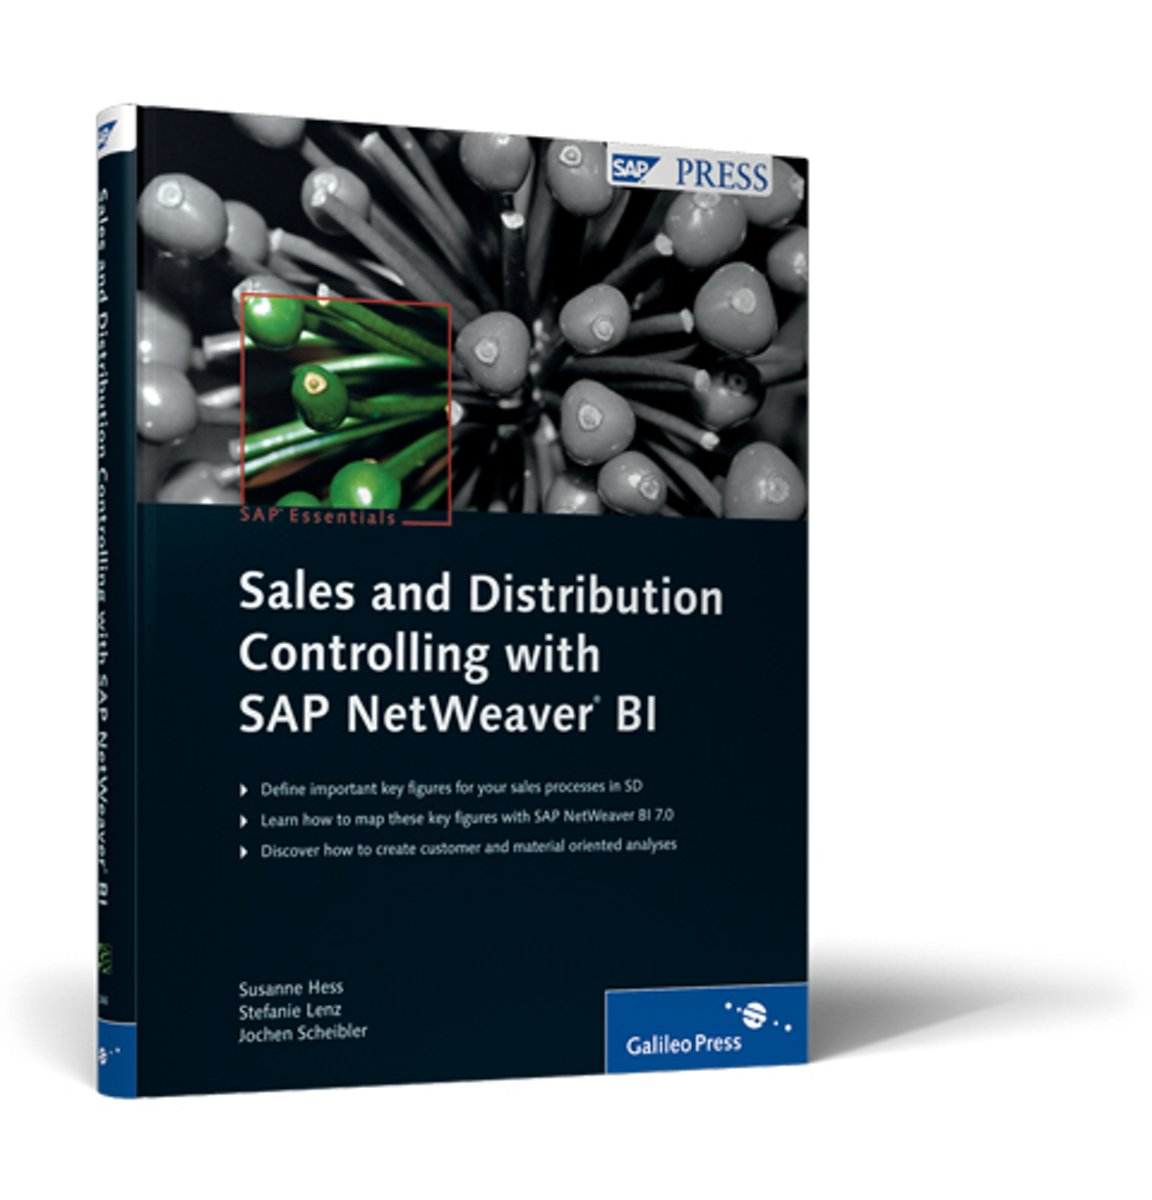 SAP Sales and Distribution Controlling with NetWeaver BI